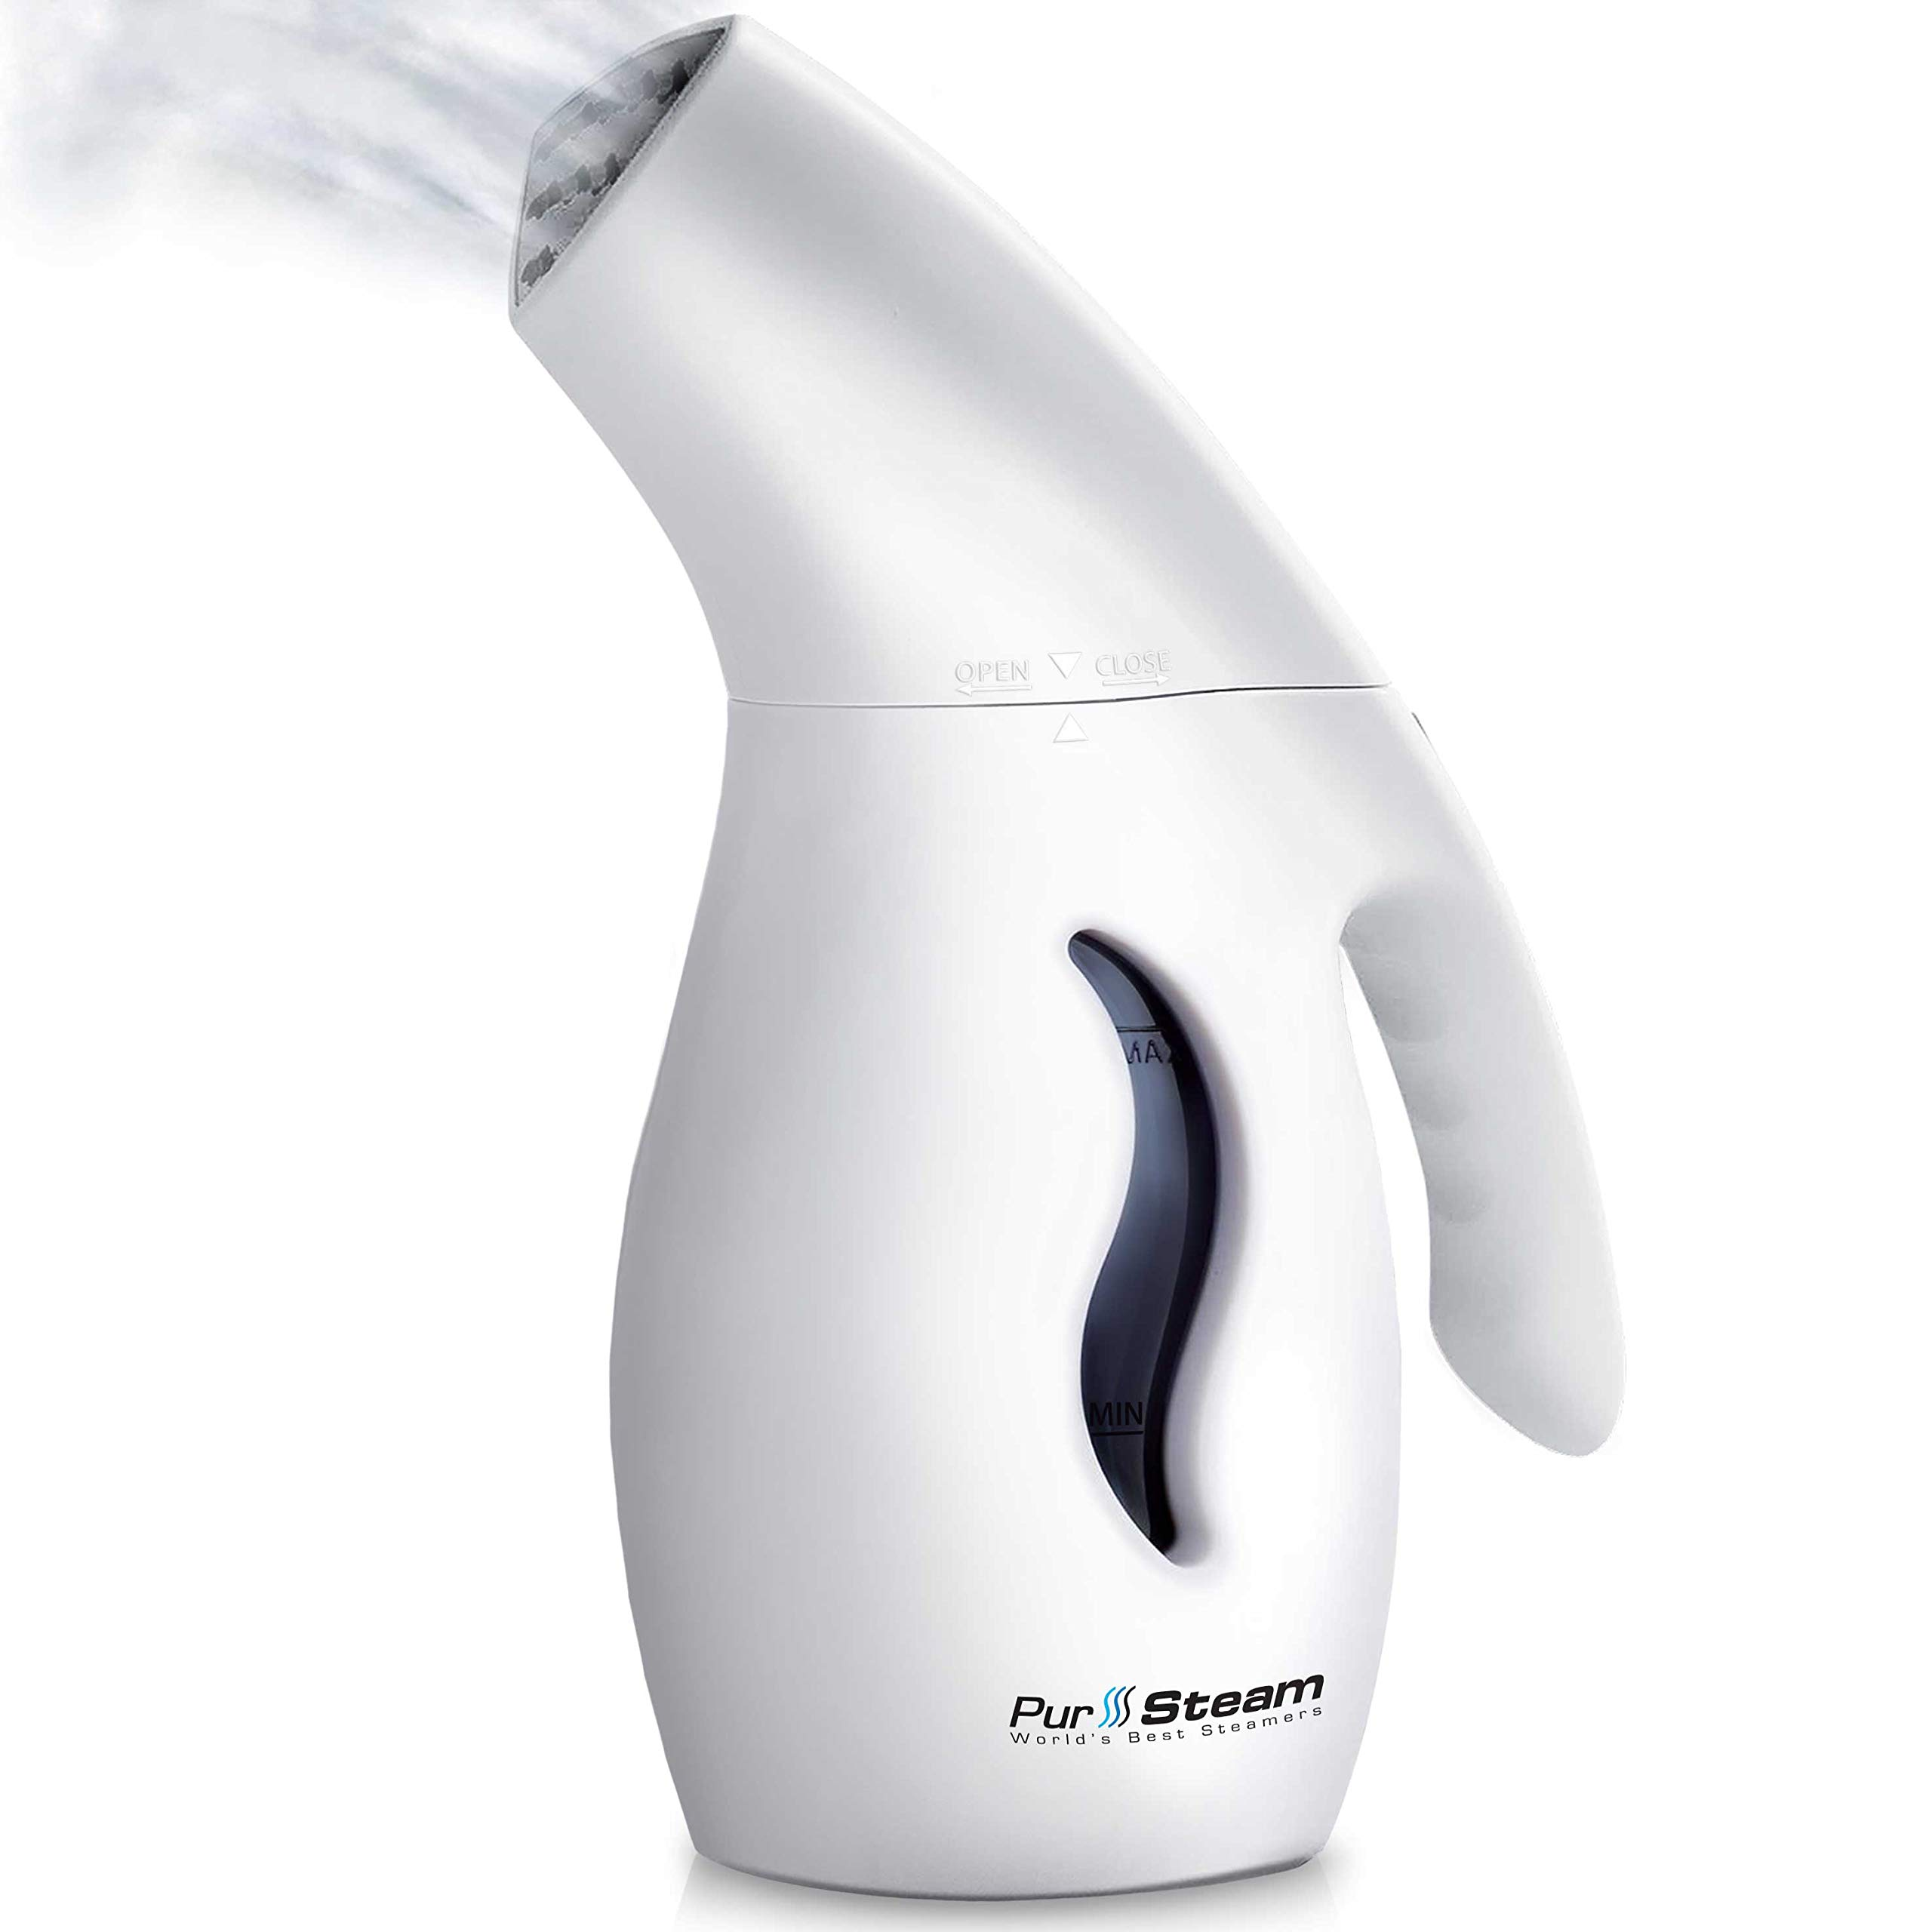 PurSteam Elite Powerful 7-1 Clothes/Garment/Fabric Steamer Remove Wrinkles Steam Soften Clean Sanitize Sterilize and Defrost with UltraFast-Heat, Aluminum Element, Perfect for Home and Travel